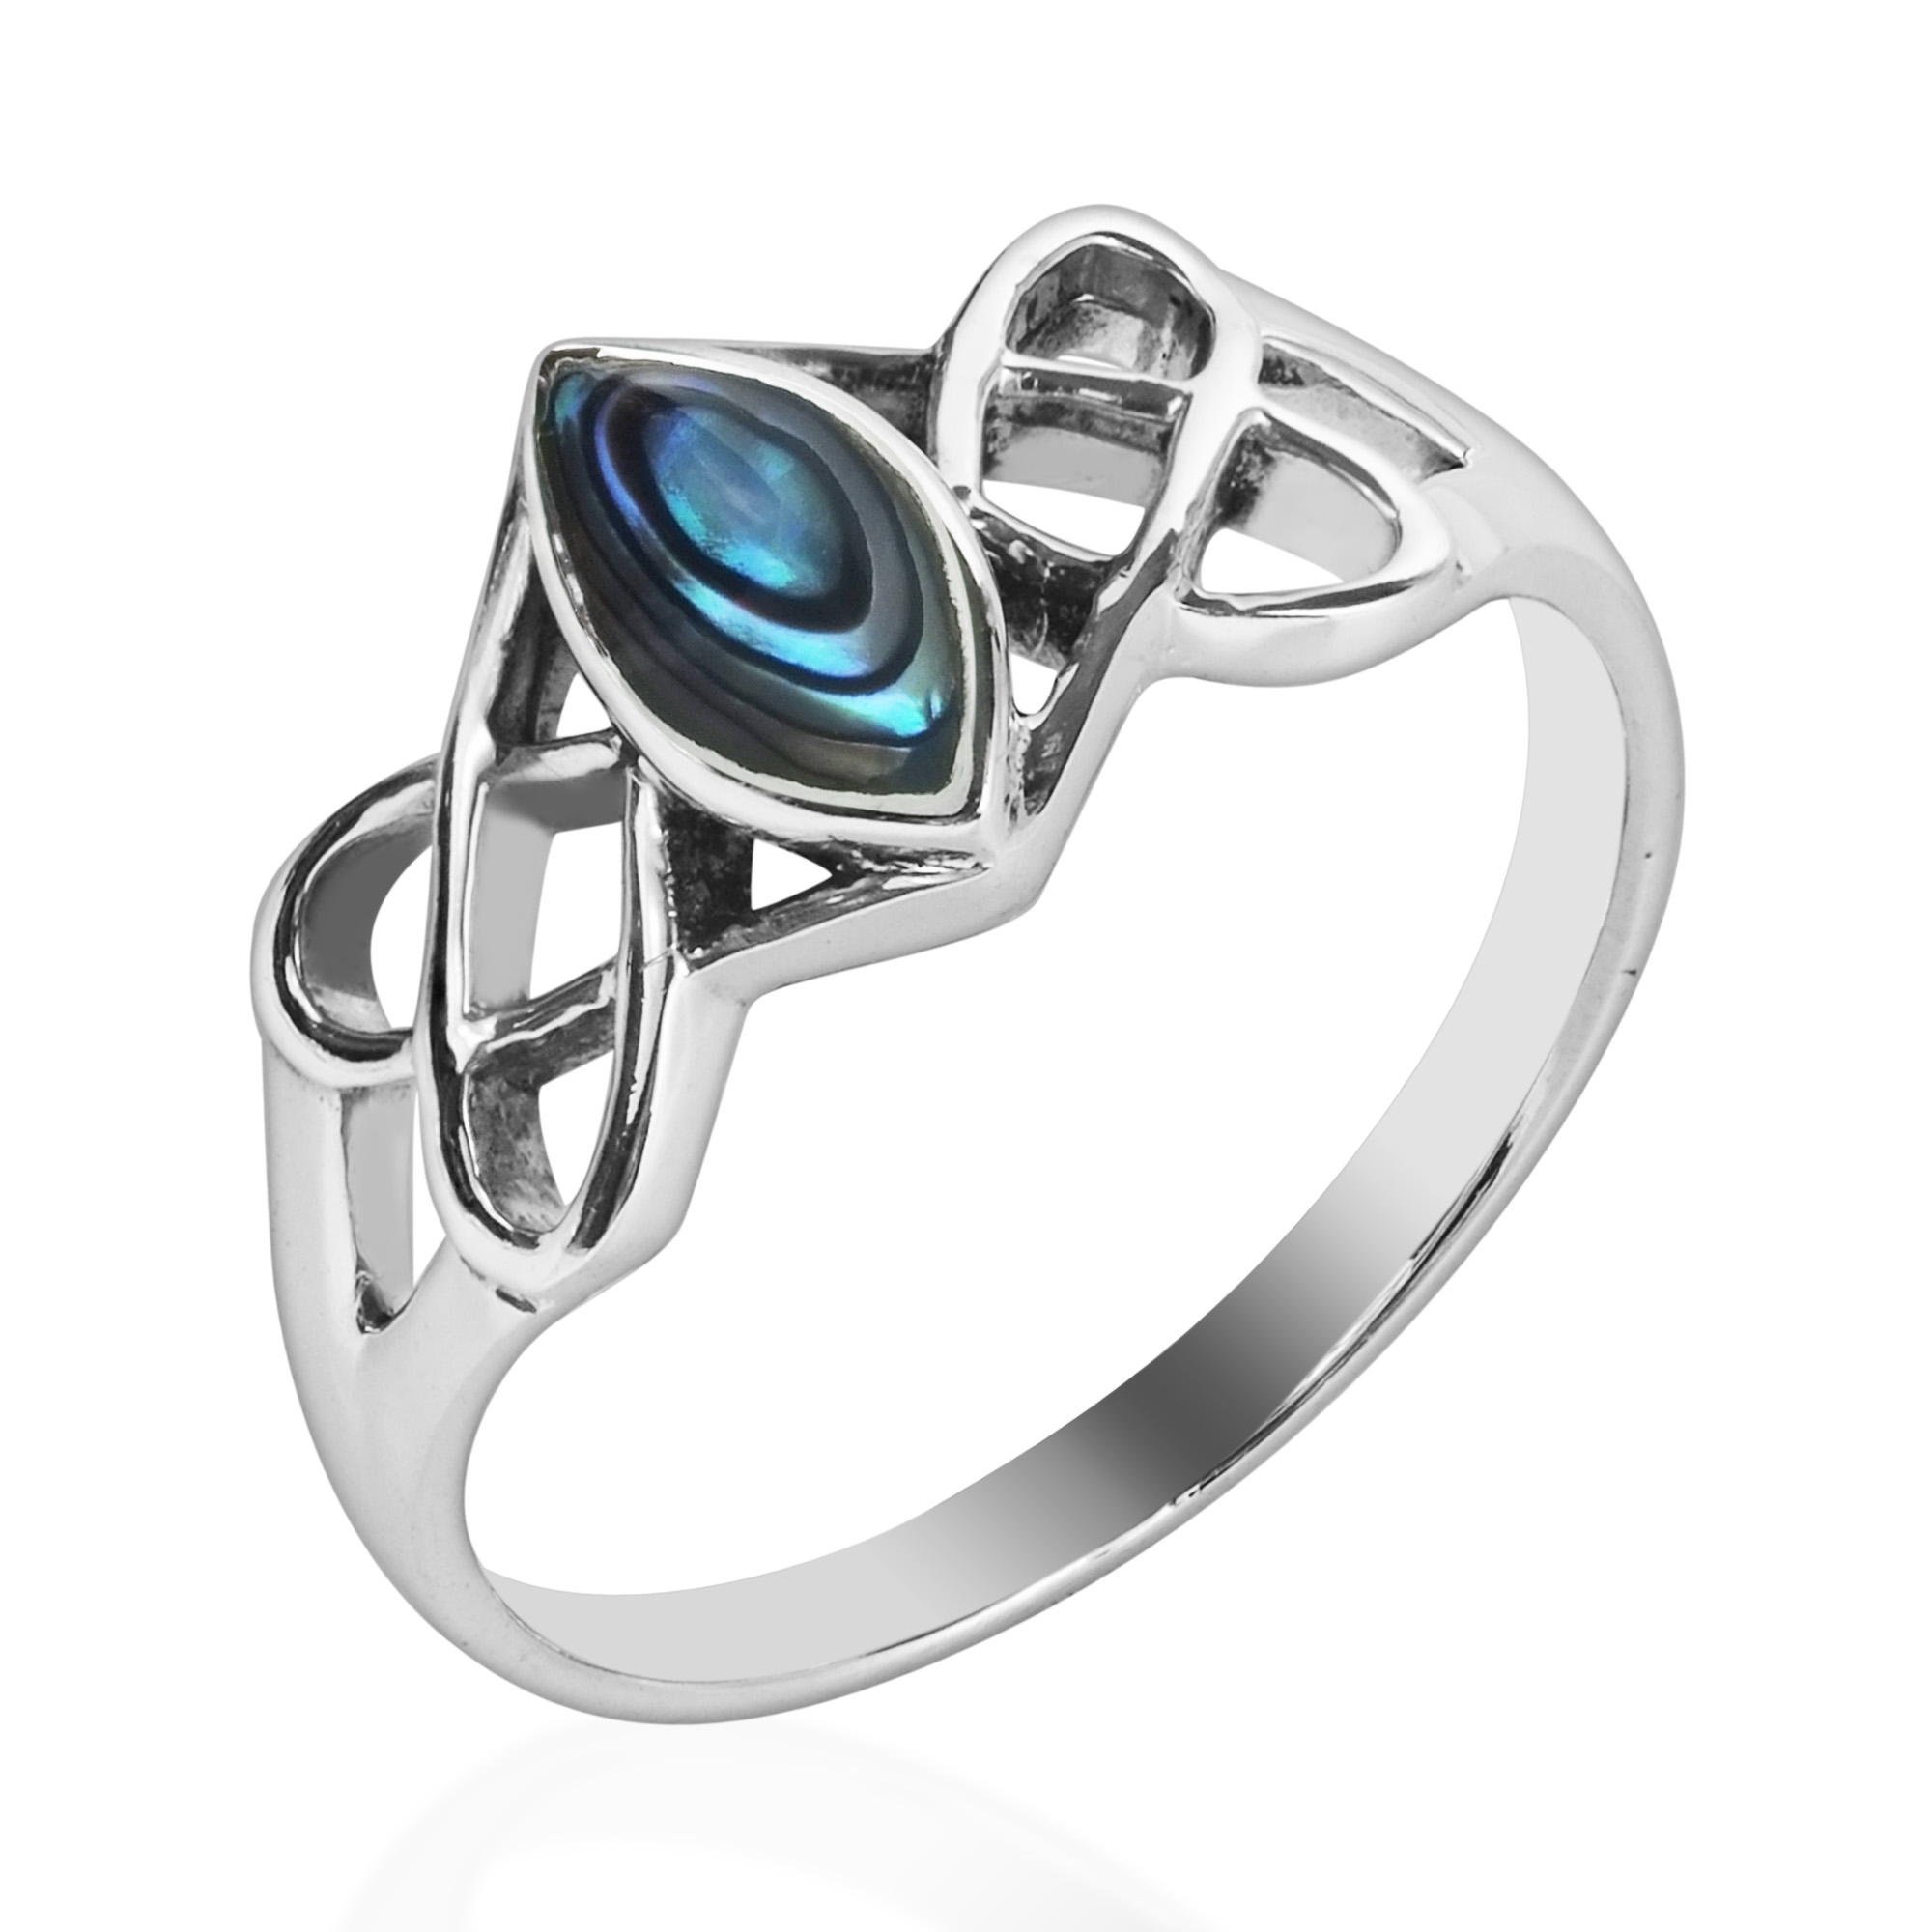 rings crown ring silver auld engagement jewelry abalone products teardrop melanie